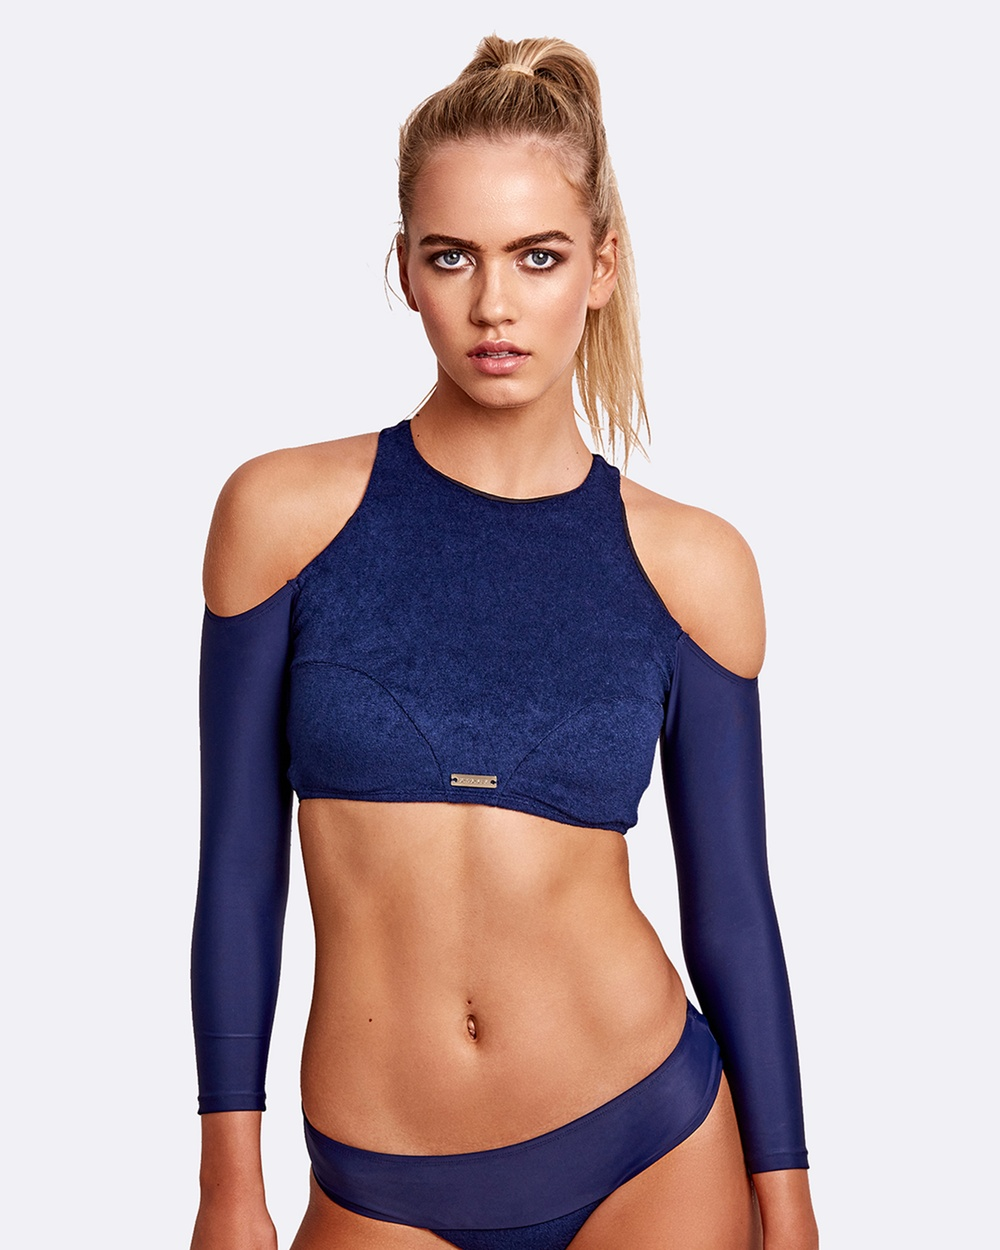 ZINGIBER Capri Long Sleeved Top Bikini Tops Navy Capri Long-Sleeved Top